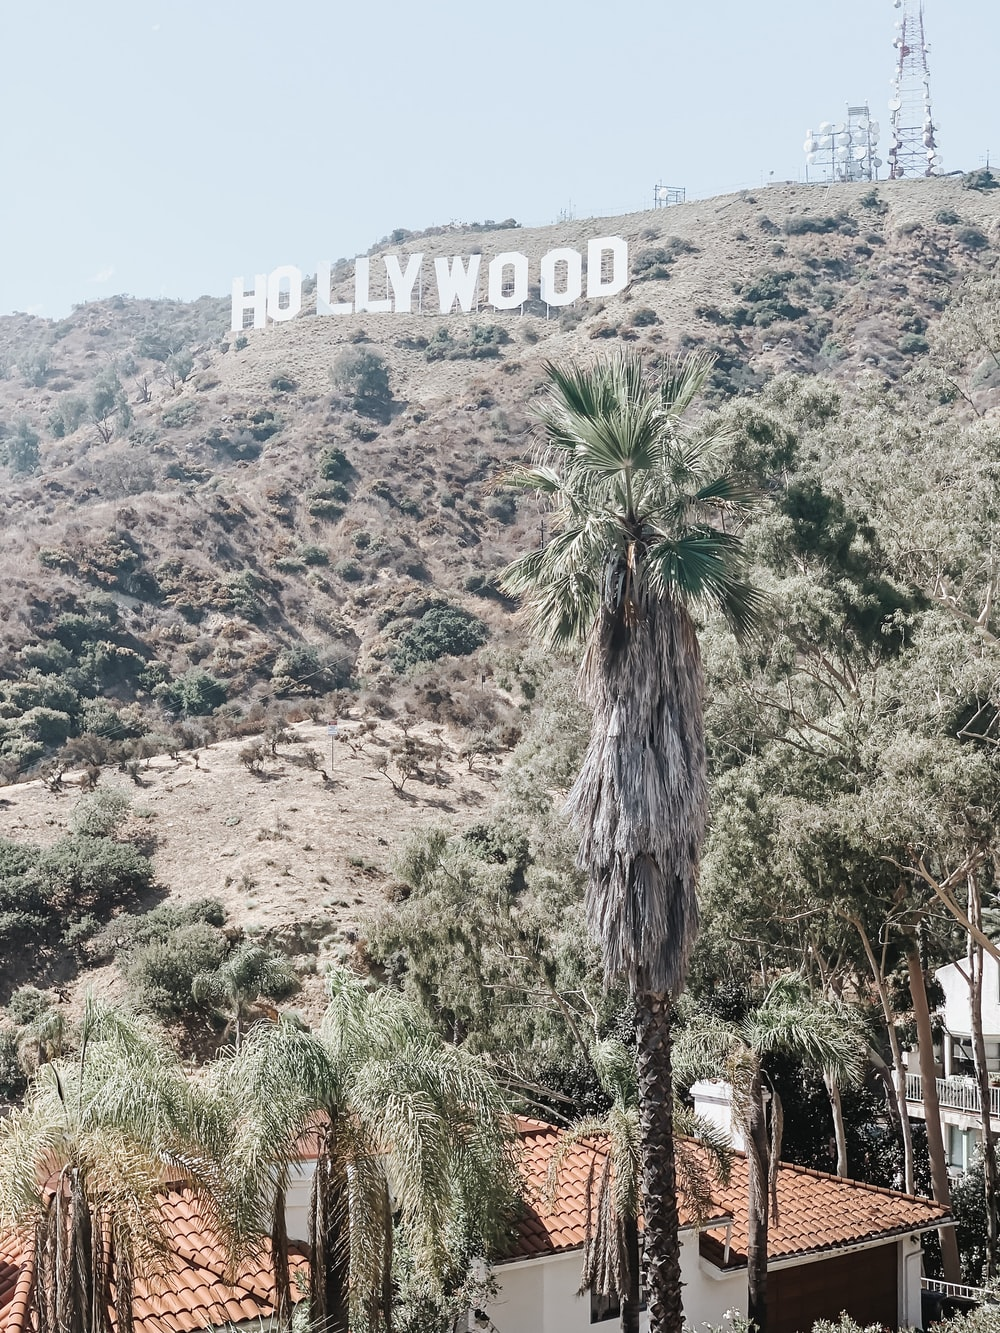 white and brown houses at the foot of Hollywood landmark